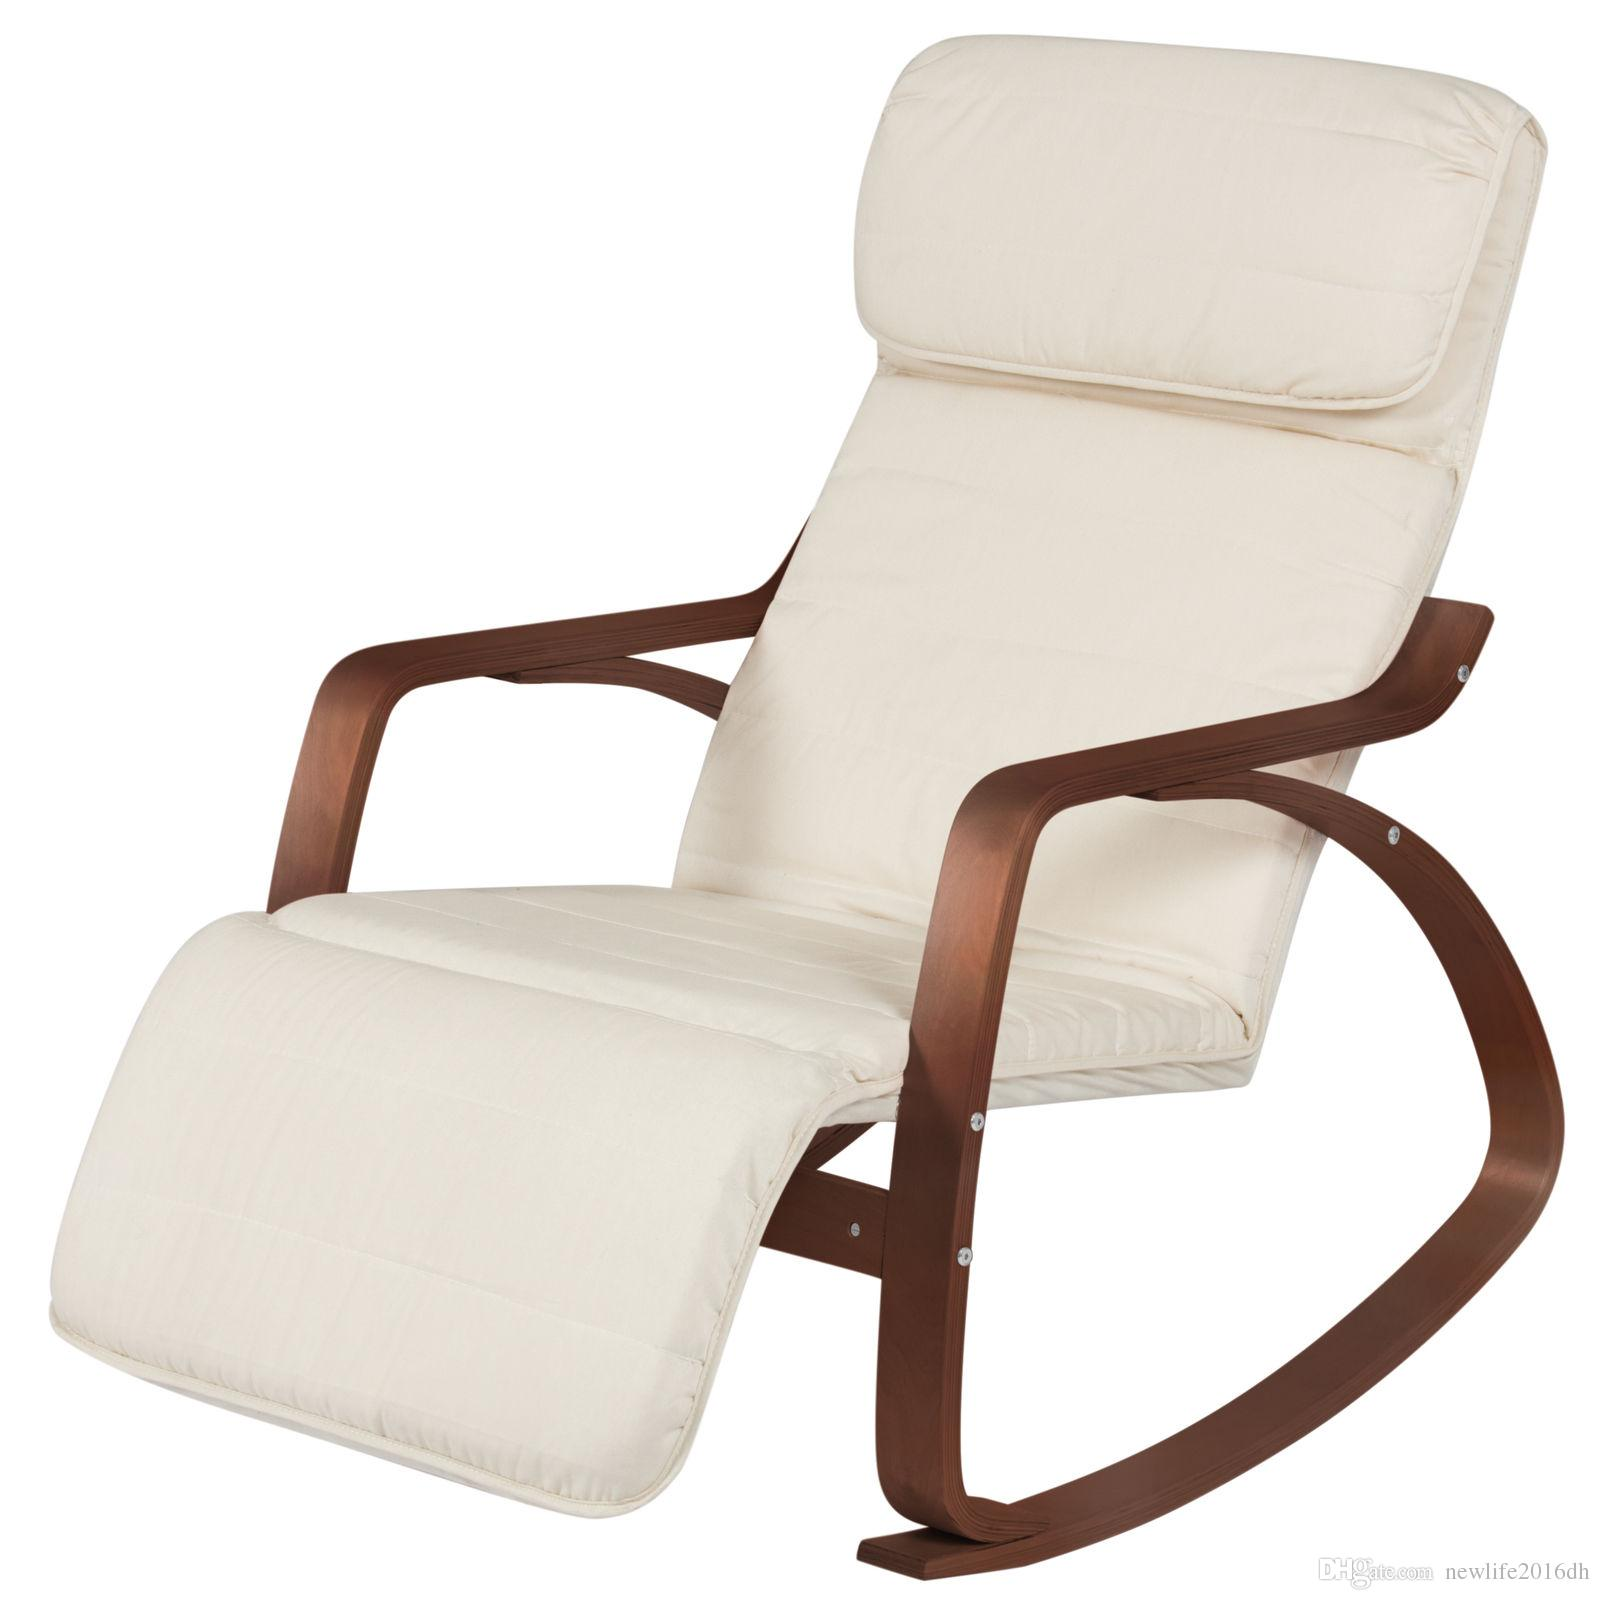 Wood Recliner Rocking Chair W/ Adjustable Foot Rest  White/Espresso Chair  Online With $92.9/Piece On Newlife2016dhu0027s Store | DHgate.com